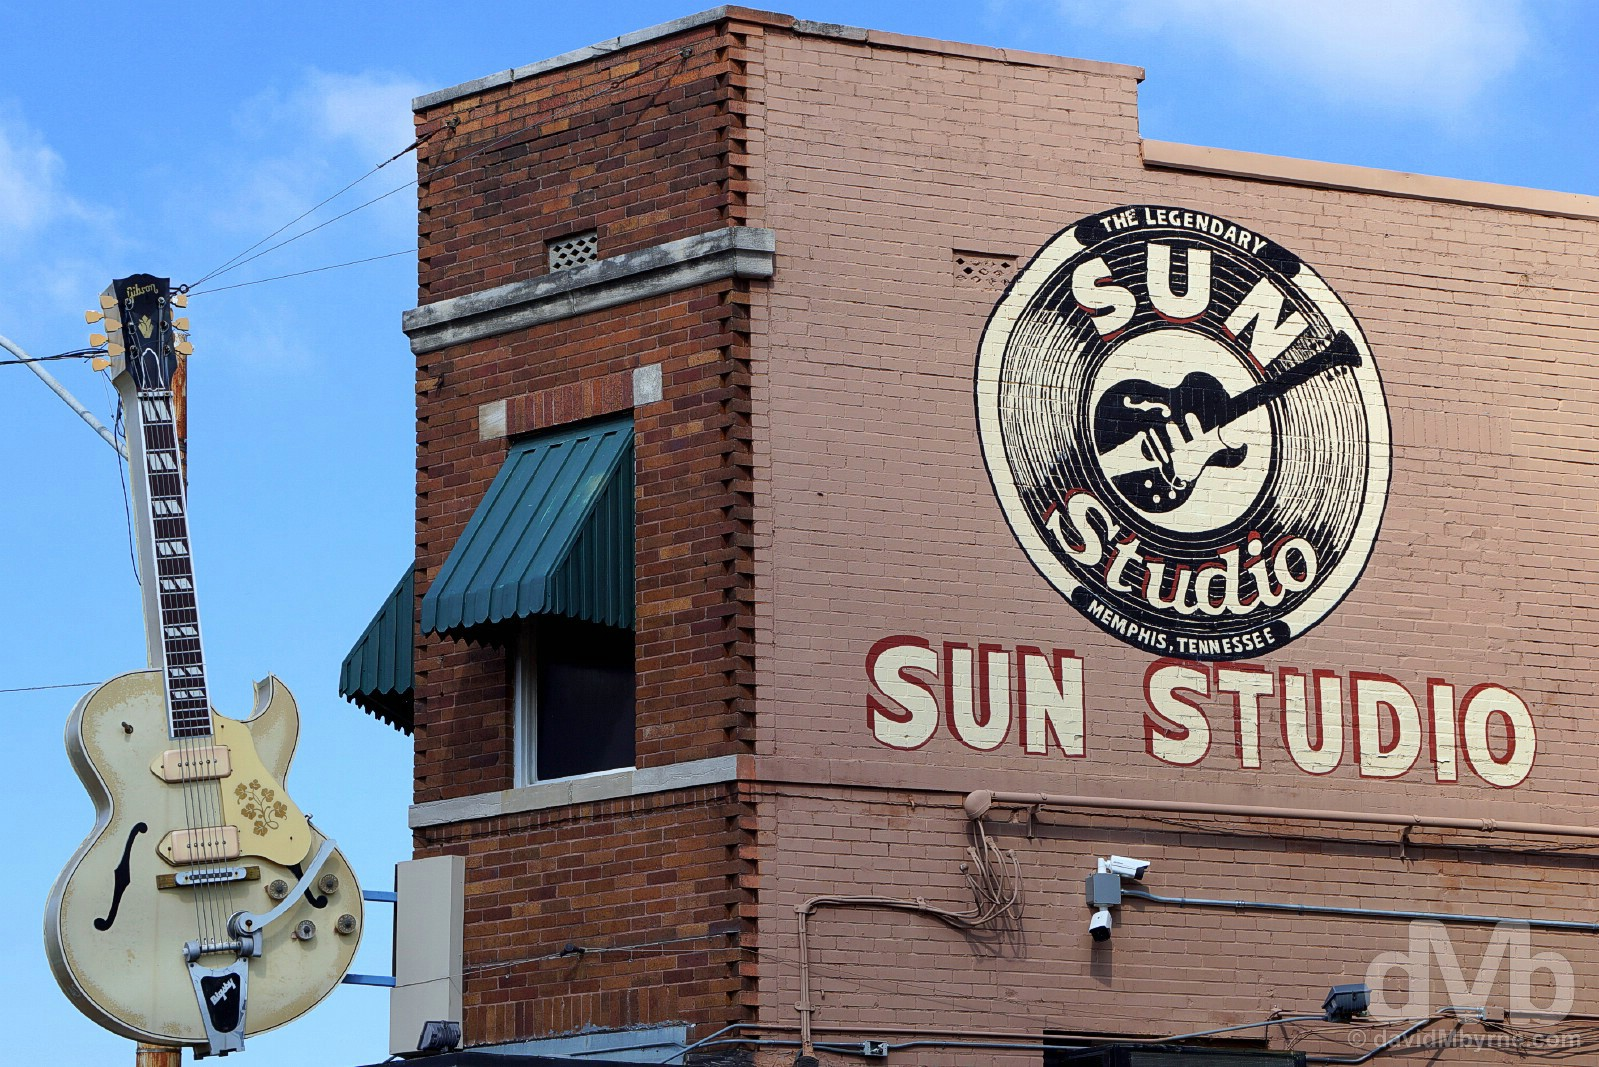 Sun Studios, Memphis, Tennessee, USA. September 19, 2016.